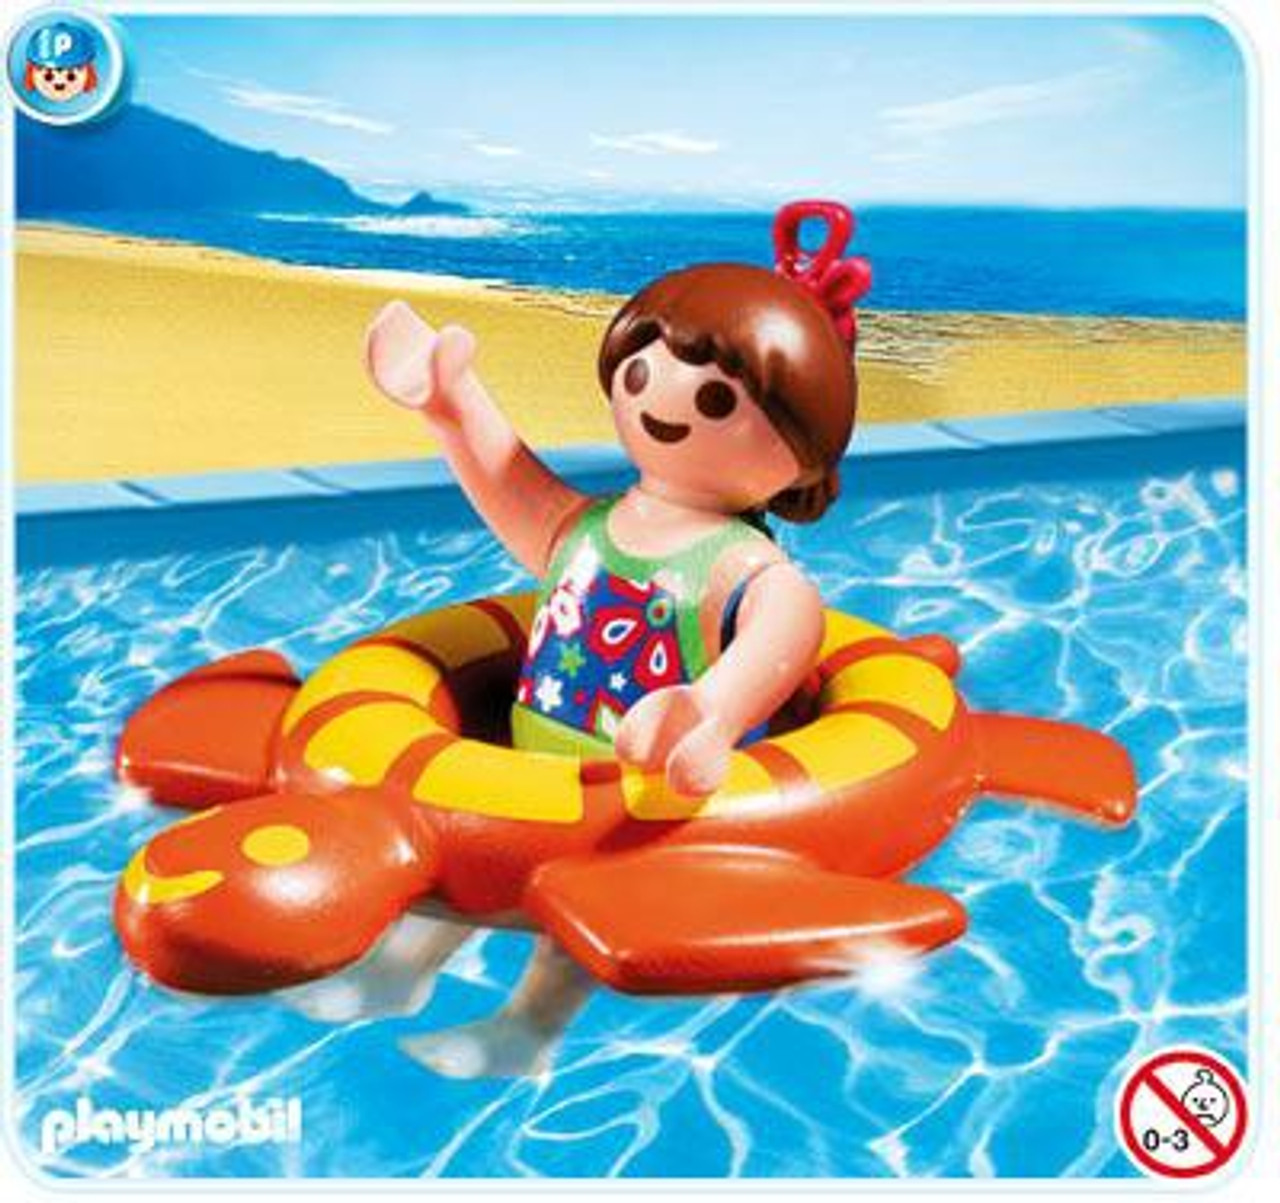 Playmobil Vacation & Leisure Girl with Swimming Ring Set #4860